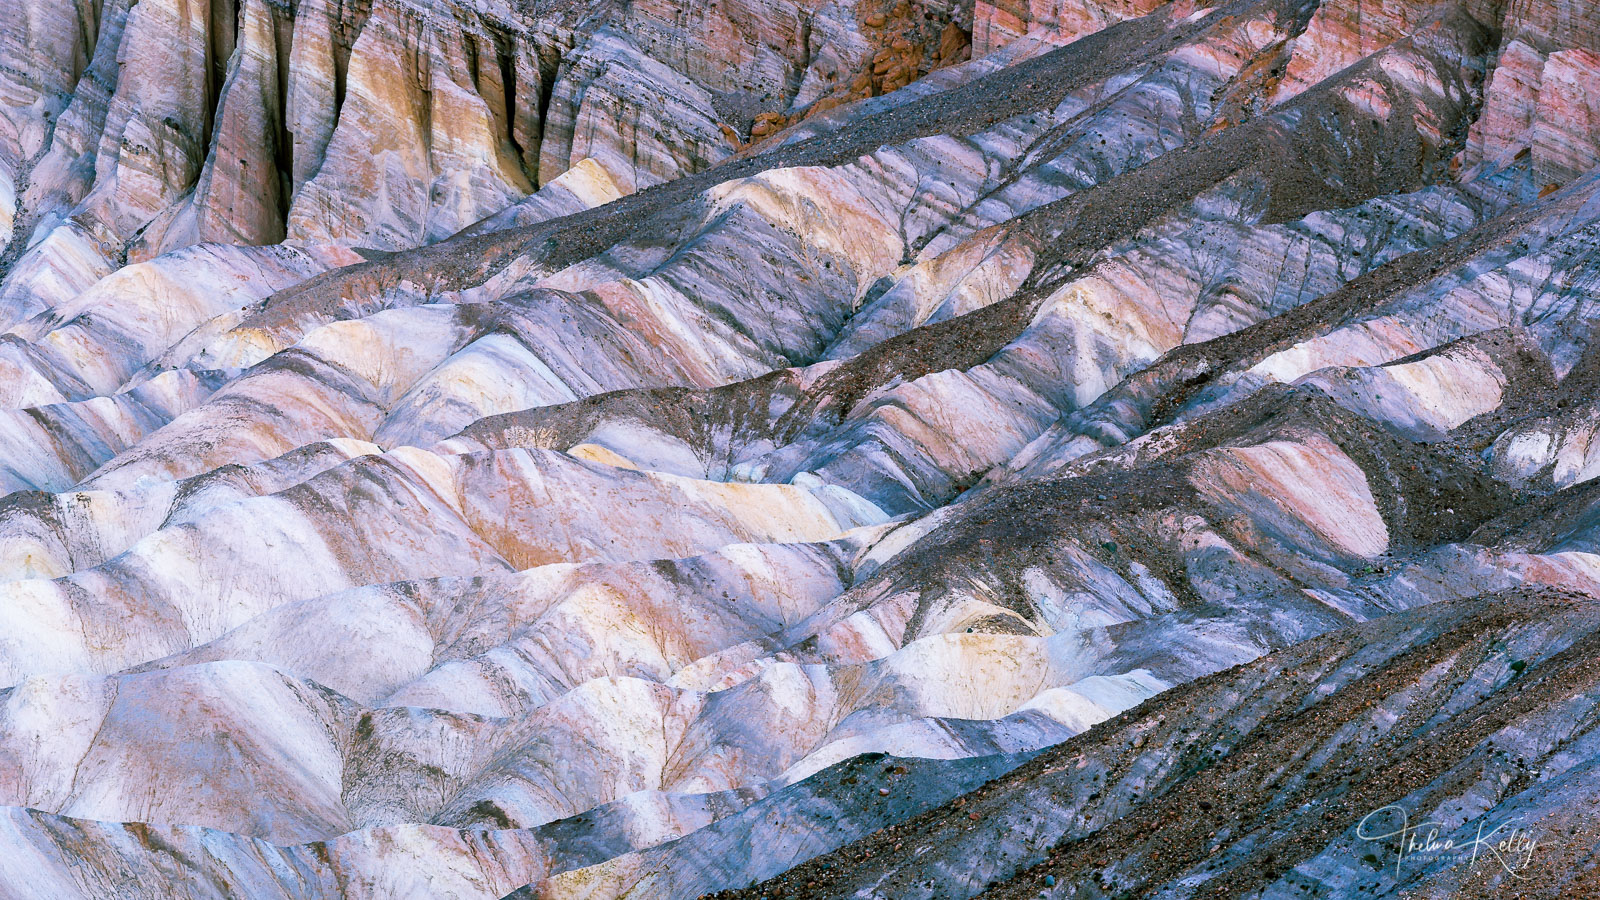 Death Valley National Park is so much more than sand. Here at Zabriskie Point, the colors, textures, lines and curves lends itself...